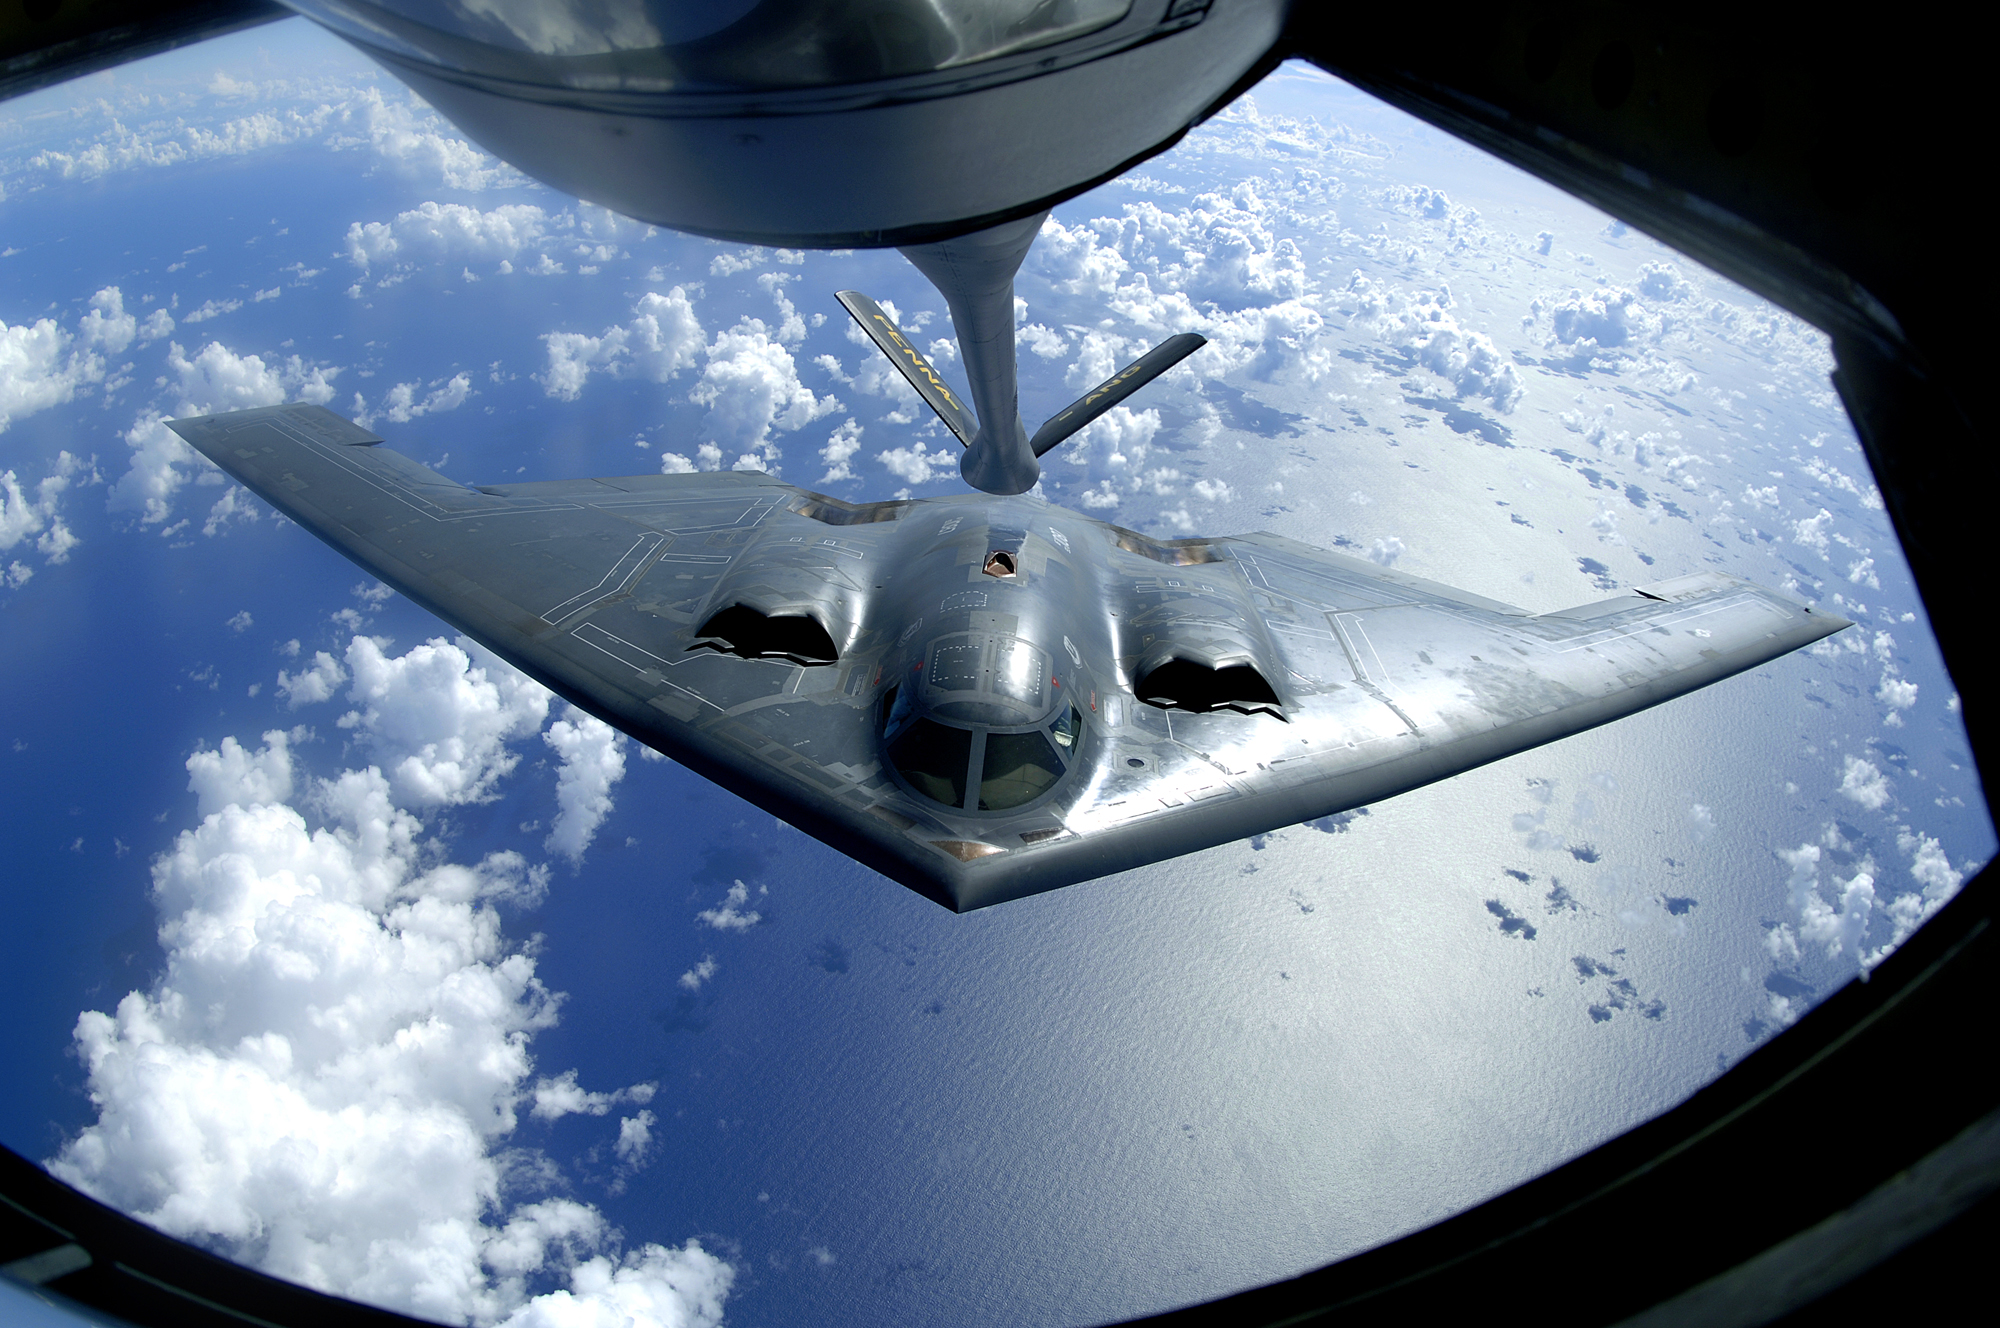 hight resolution of a b 2 spirit moves into position for refueling from a kc 135 stratotanker